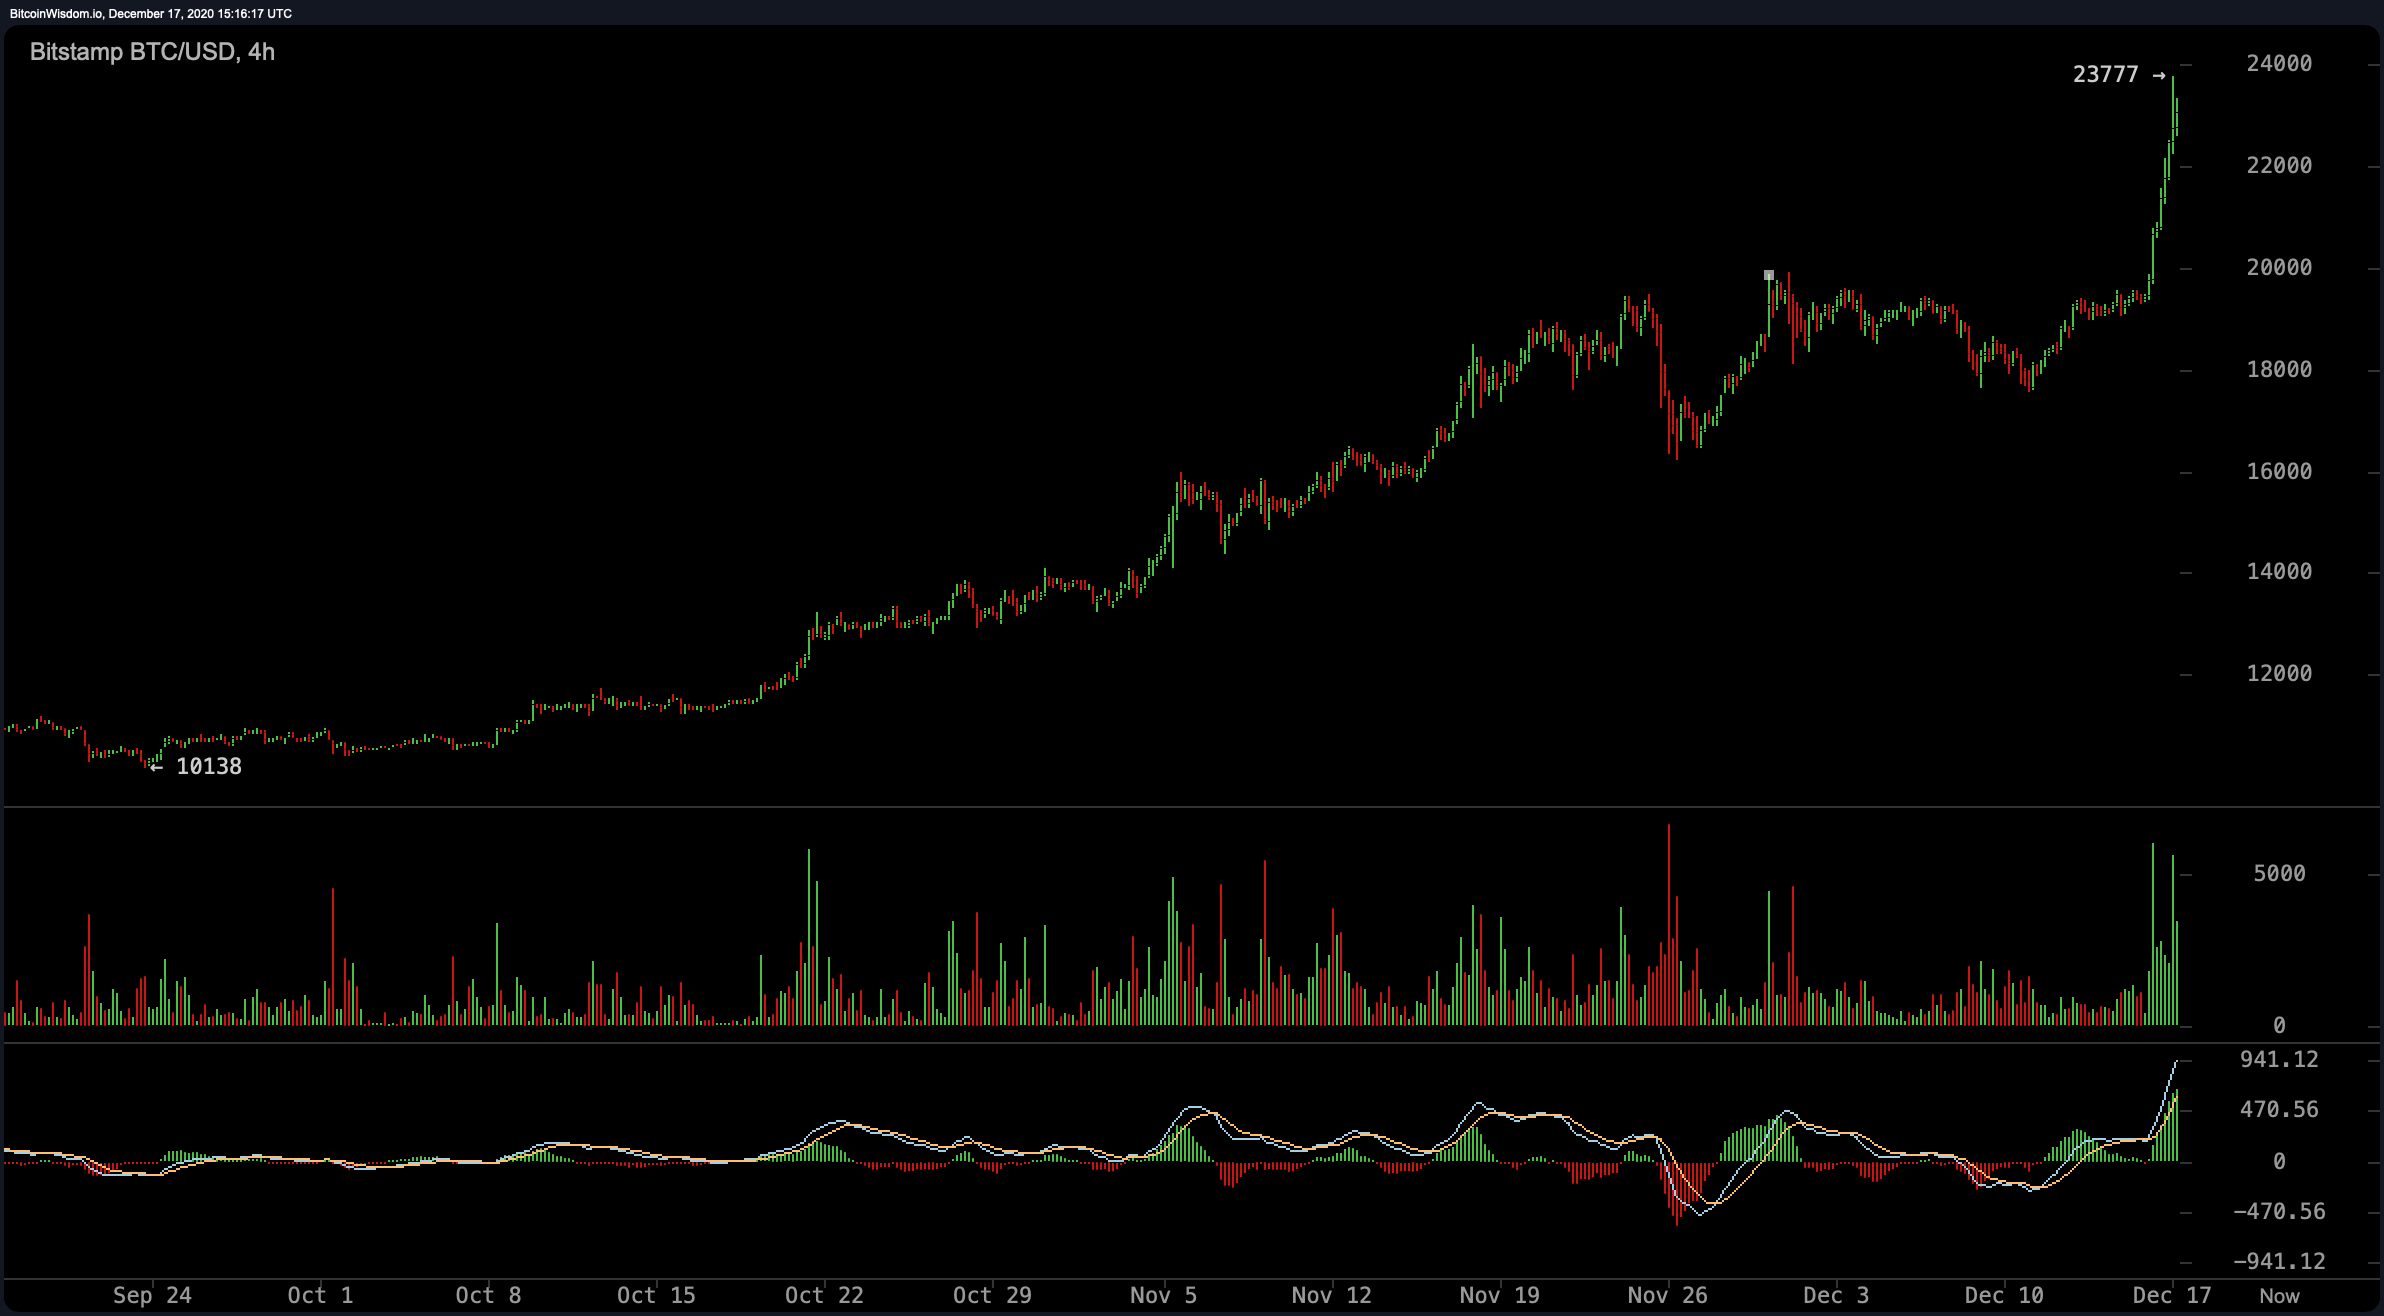 Bitcoin's Value Surpasses $23,700, Critics Claim Its a 'Bubble,' Onchain Analyst Says $100K Prices 'Ridiculously Low'